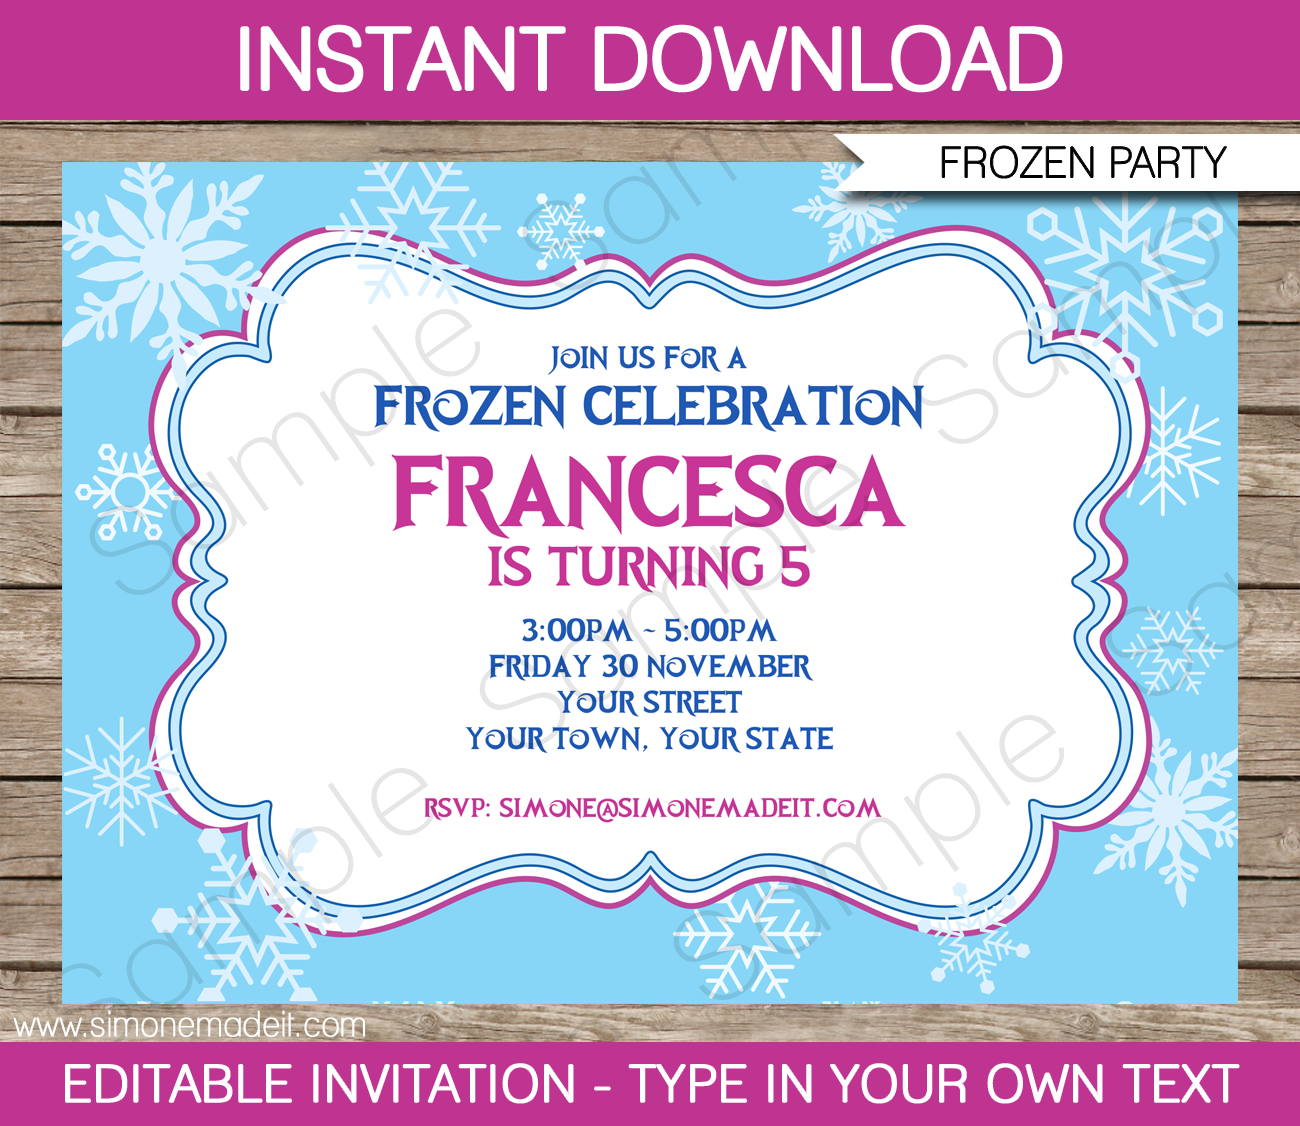 Frozen Invitation Template DIY Editable Frozen Invitations - Party invitation template: frozen birthday party invitation template